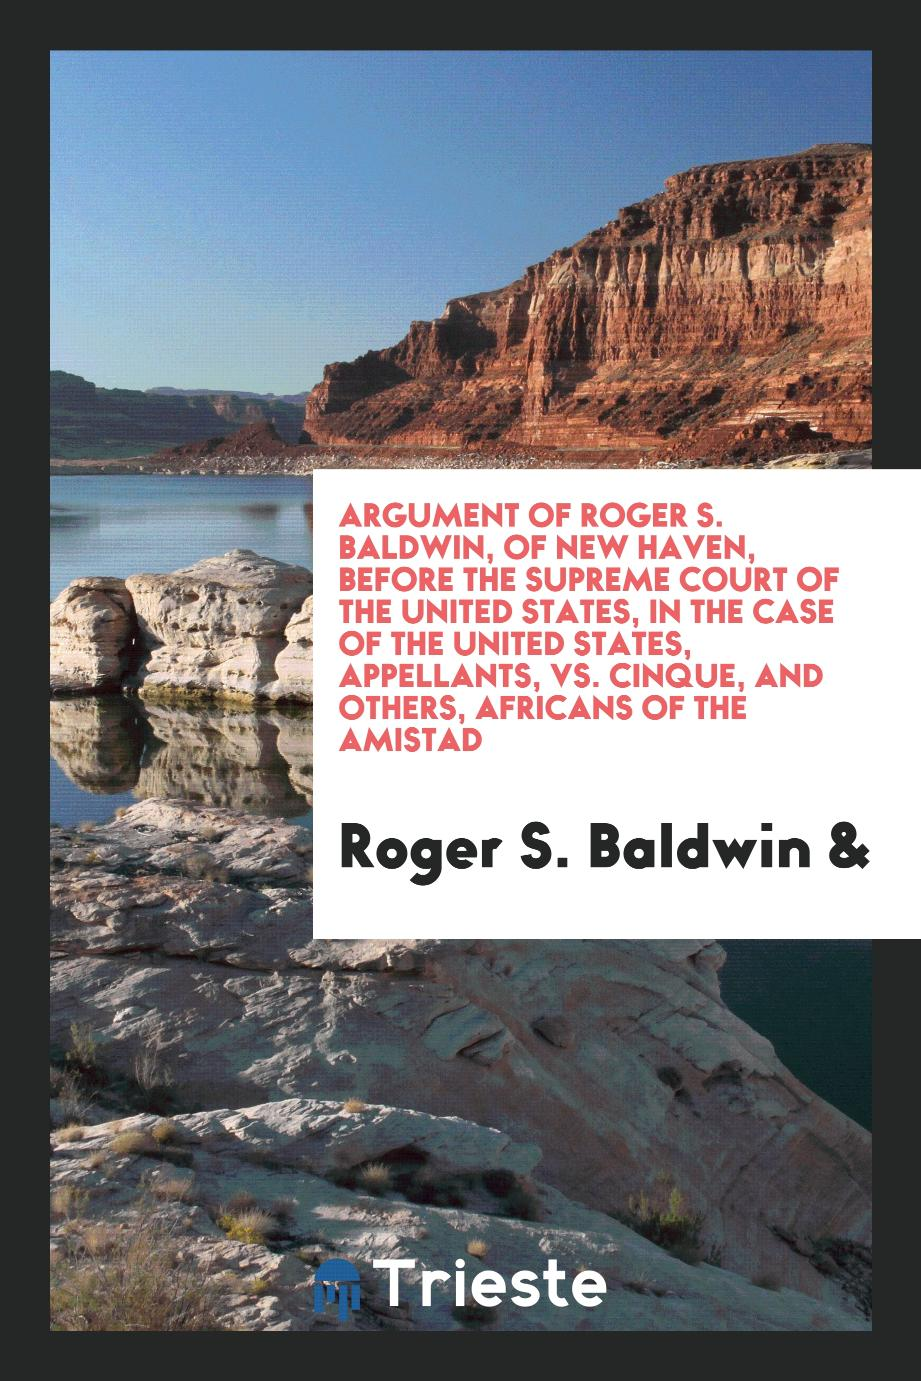 Argument of Roger S. Baldwin, of New Haven, Before the Supreme Court of the United States, in the Case of the United States, Appellants, vs. Cinque, and Others, Africans of the Amistad